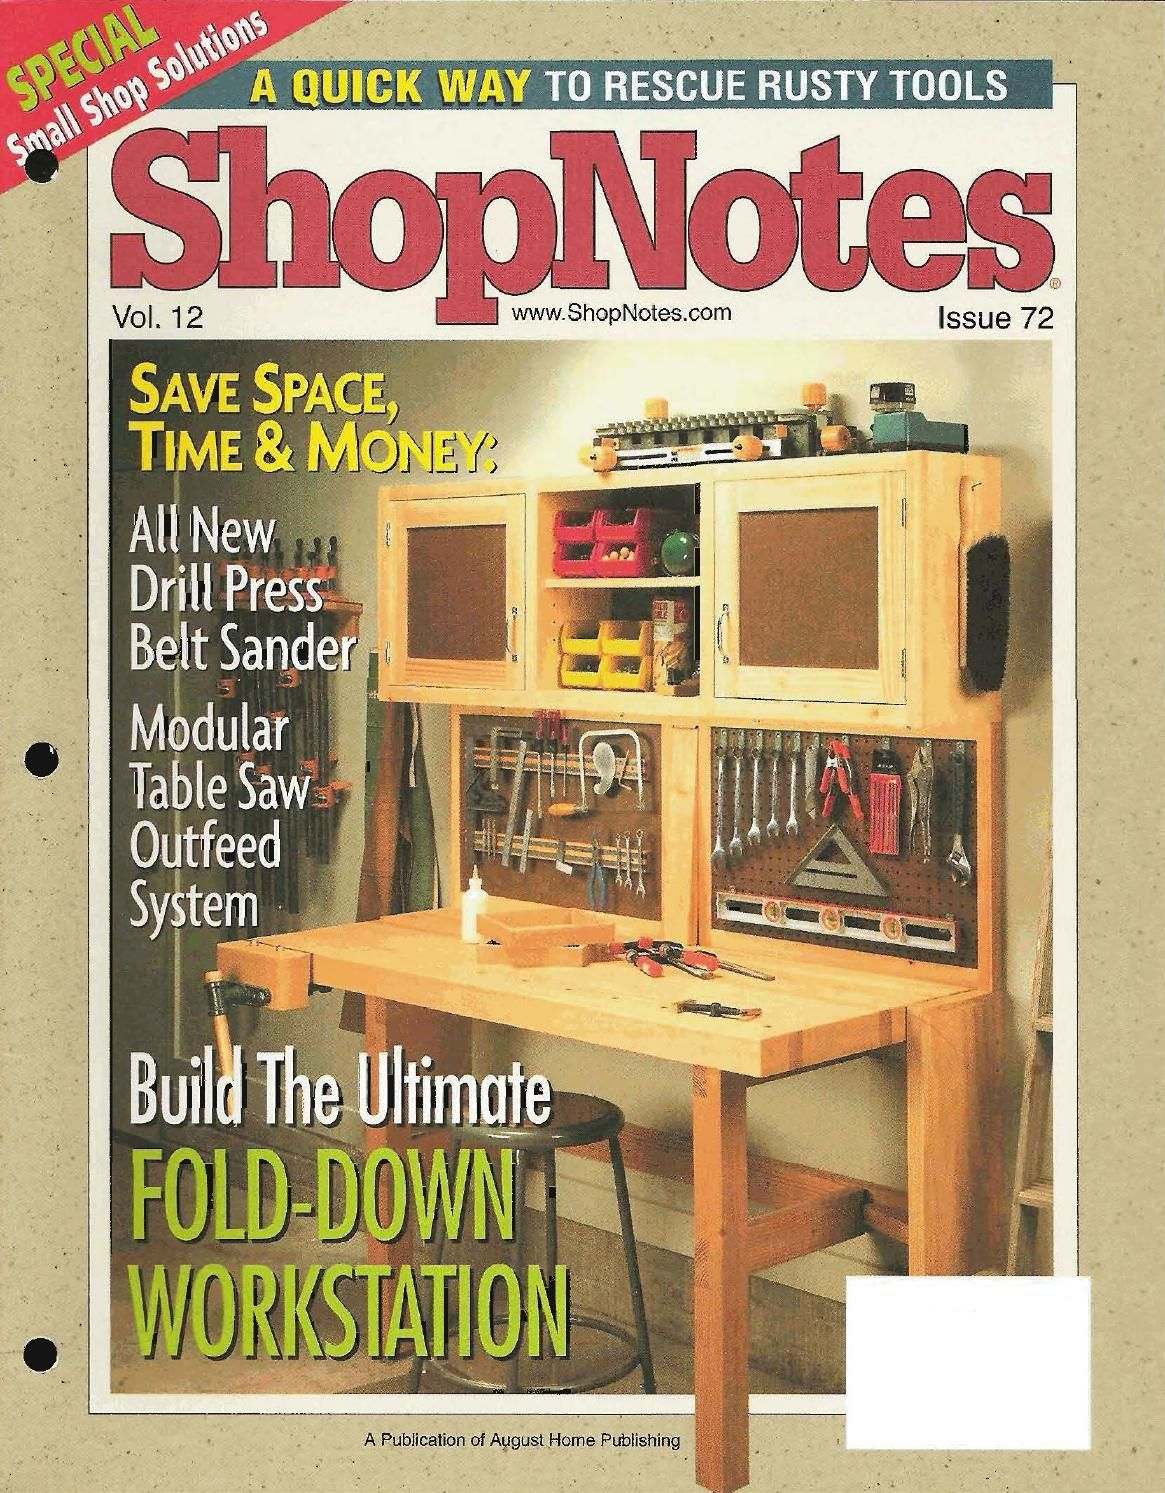 Shopnotes issue 72 shop notes pinterest woodworking note and shopnotes issue 72 greentooth Images